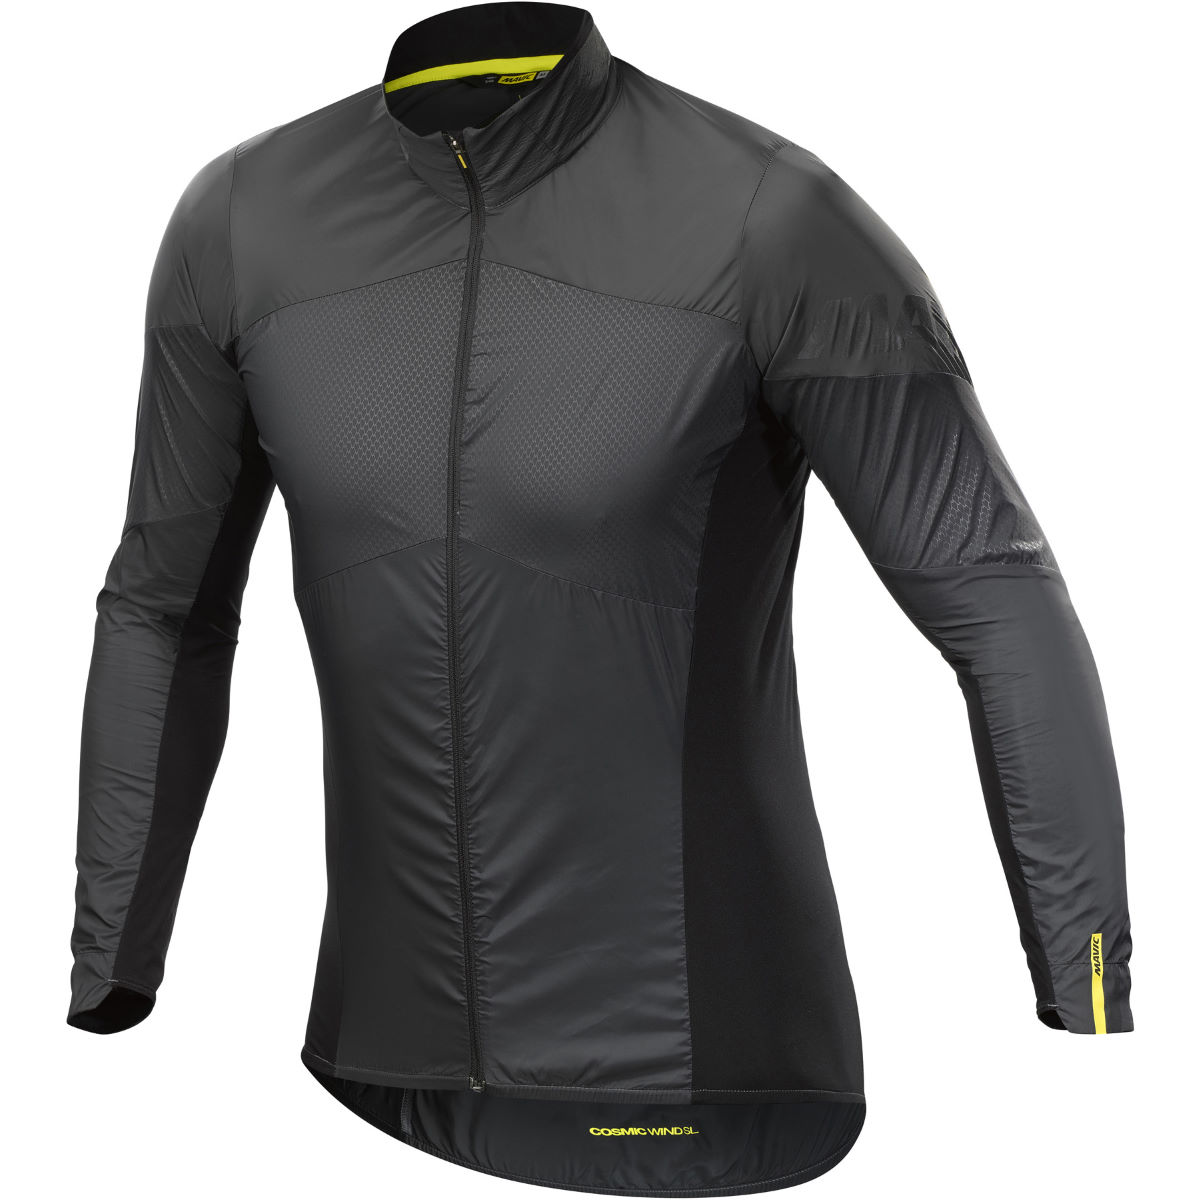 Veste Mavic Cosmic Wind SL - 2XL Black/Pirate Black  Vestes